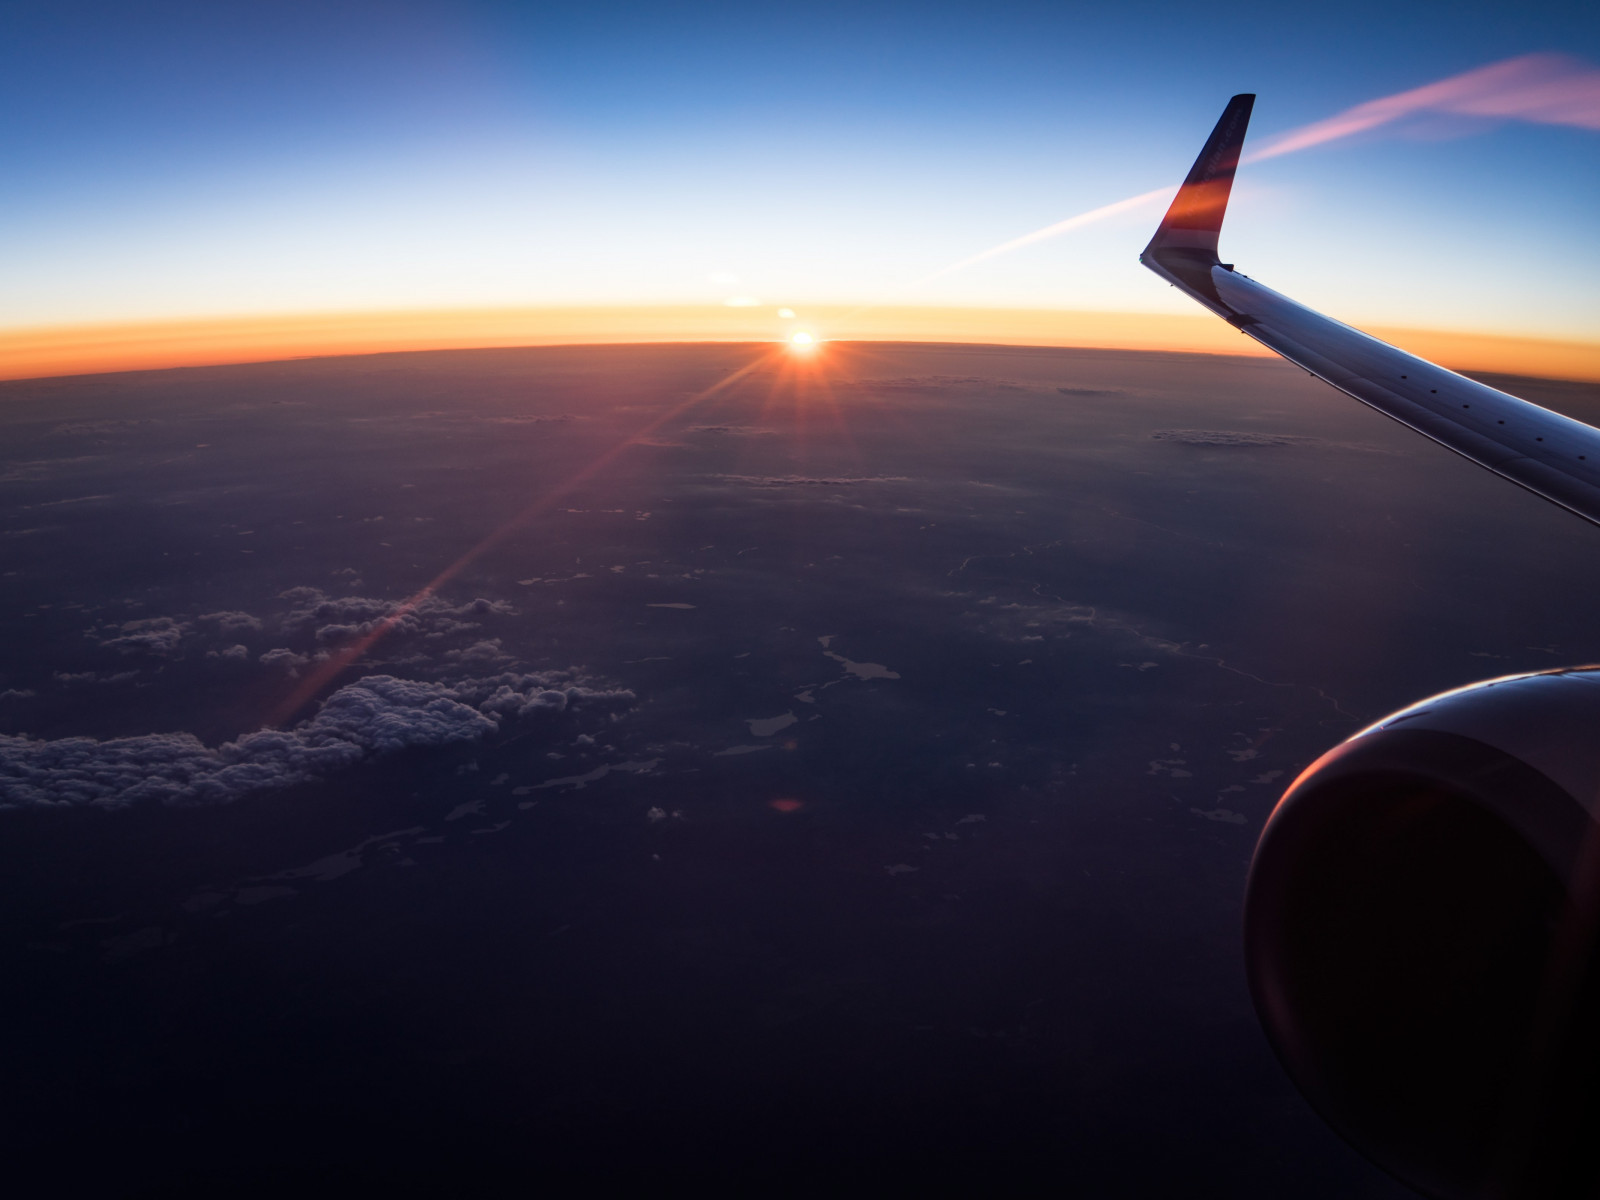 In the plane watching the sunset wallpaper 1600x1200